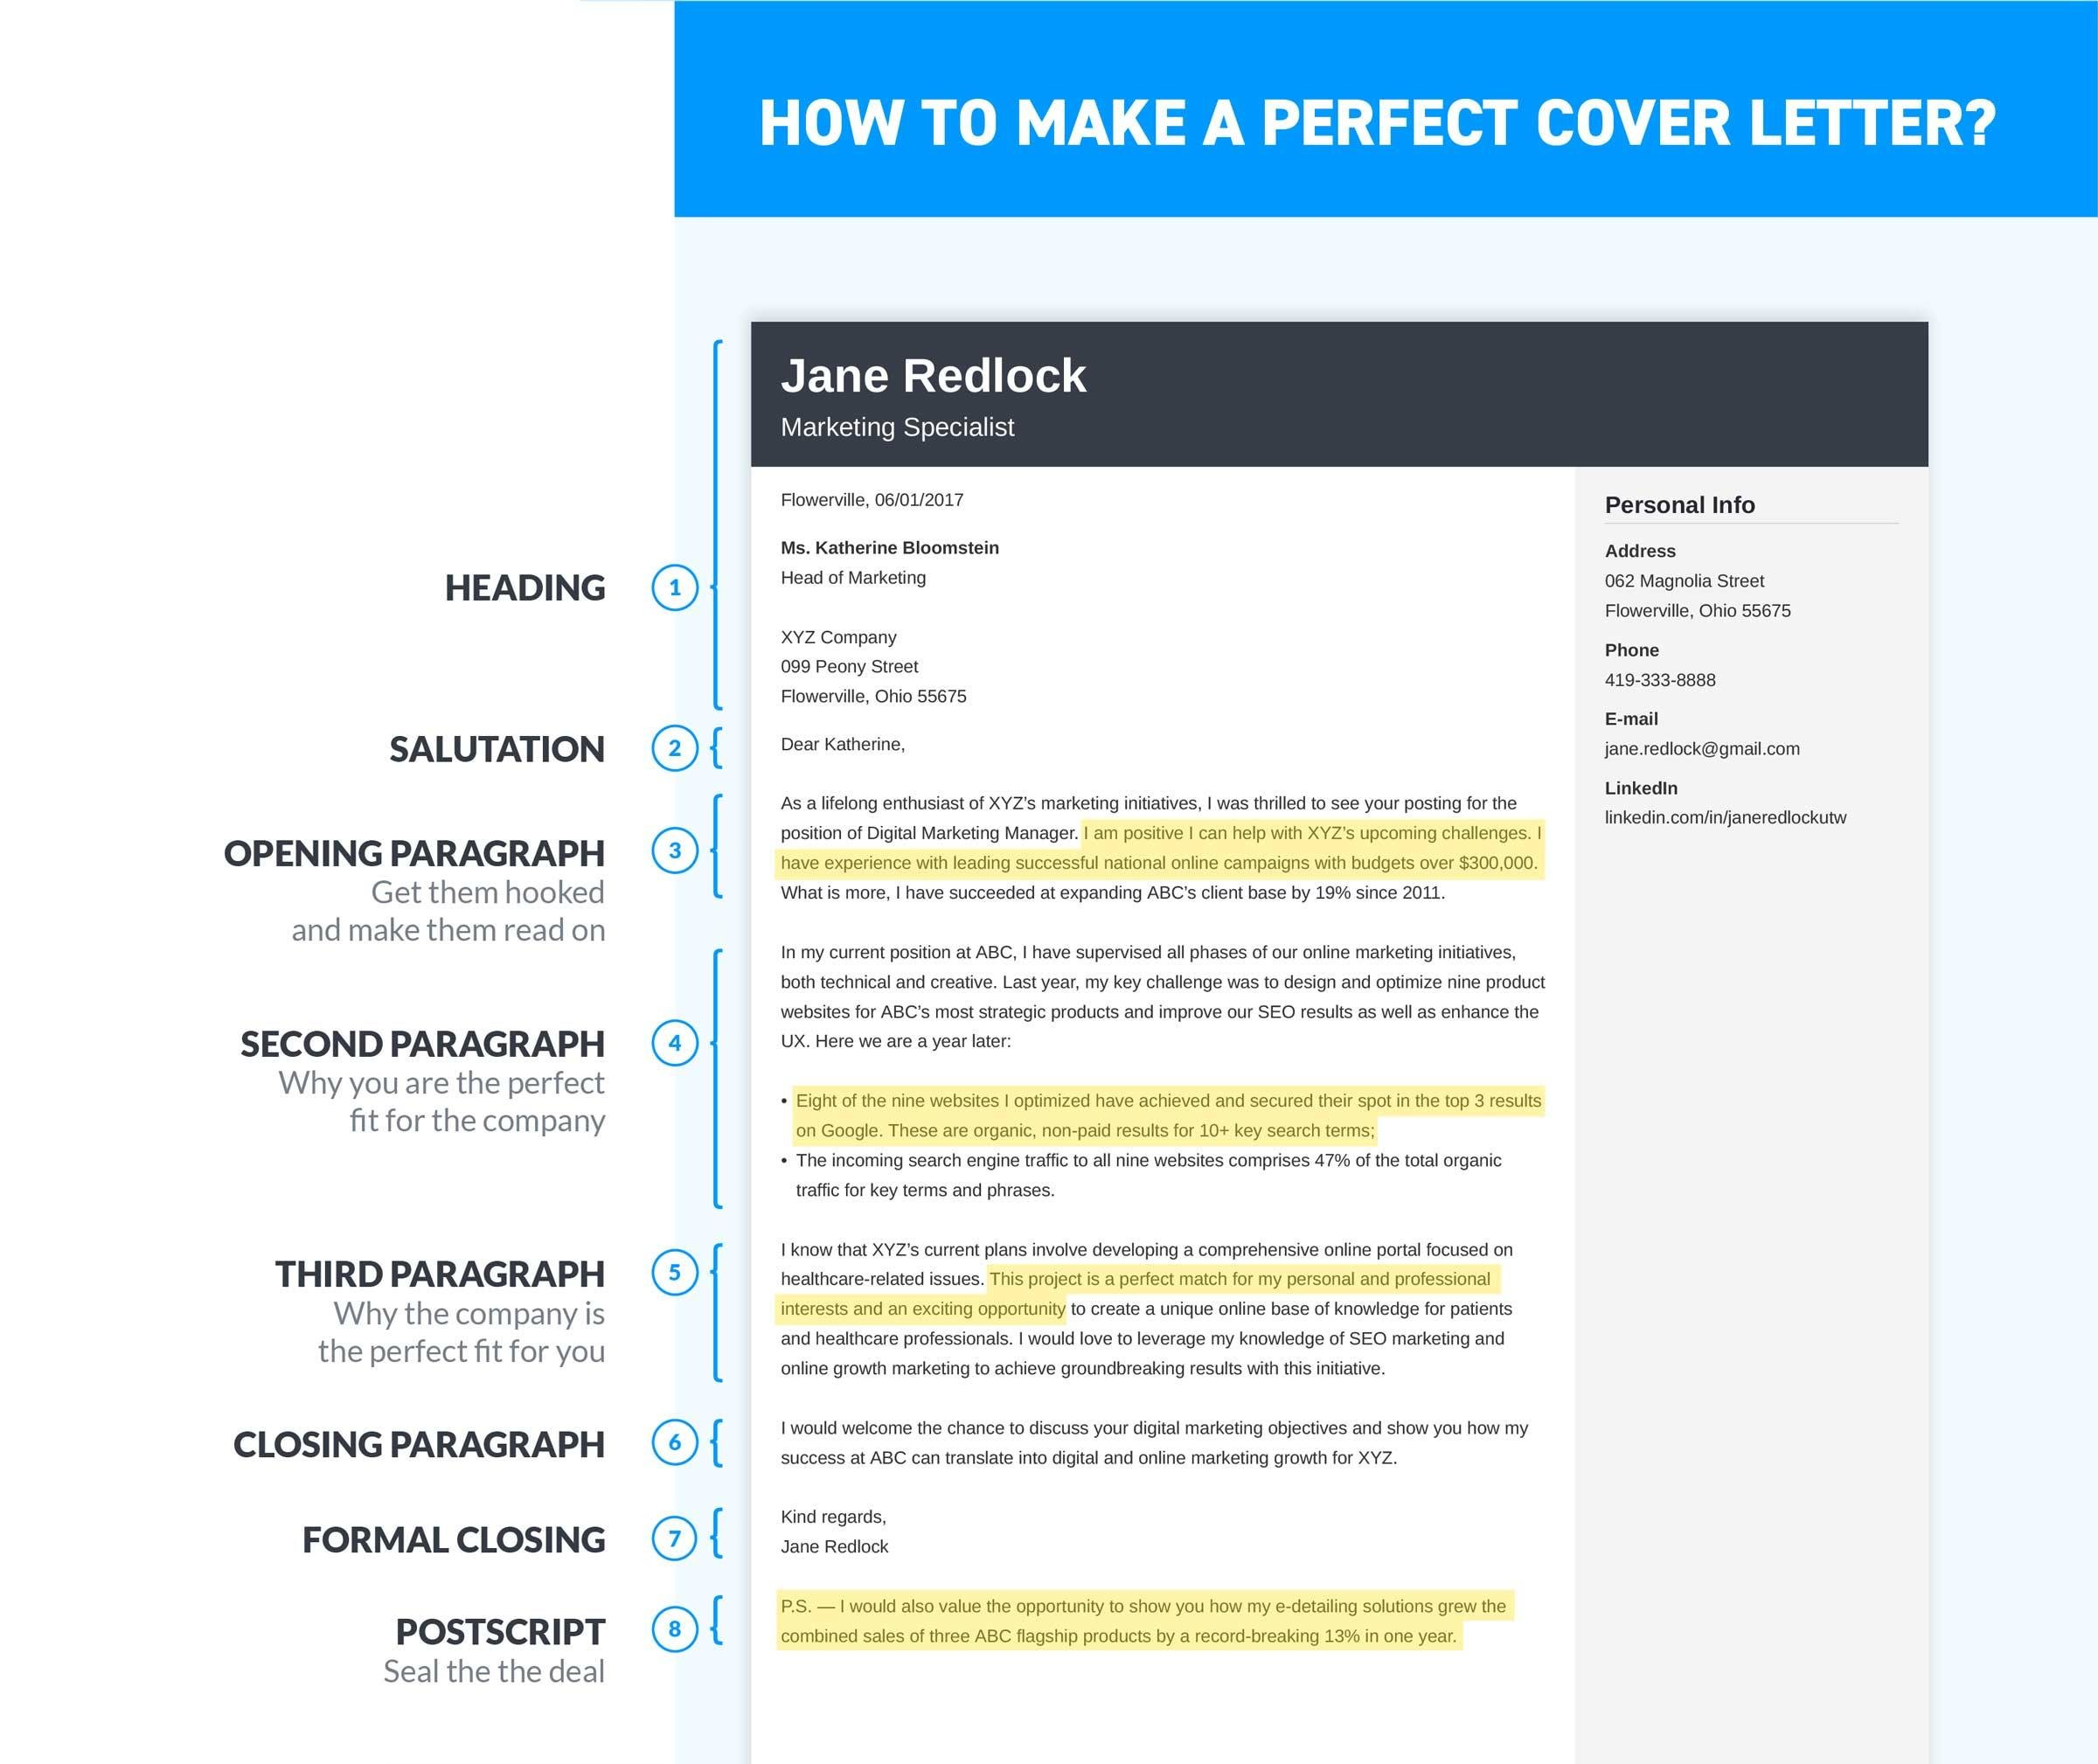 how to make a perfect cover letter infographic an example